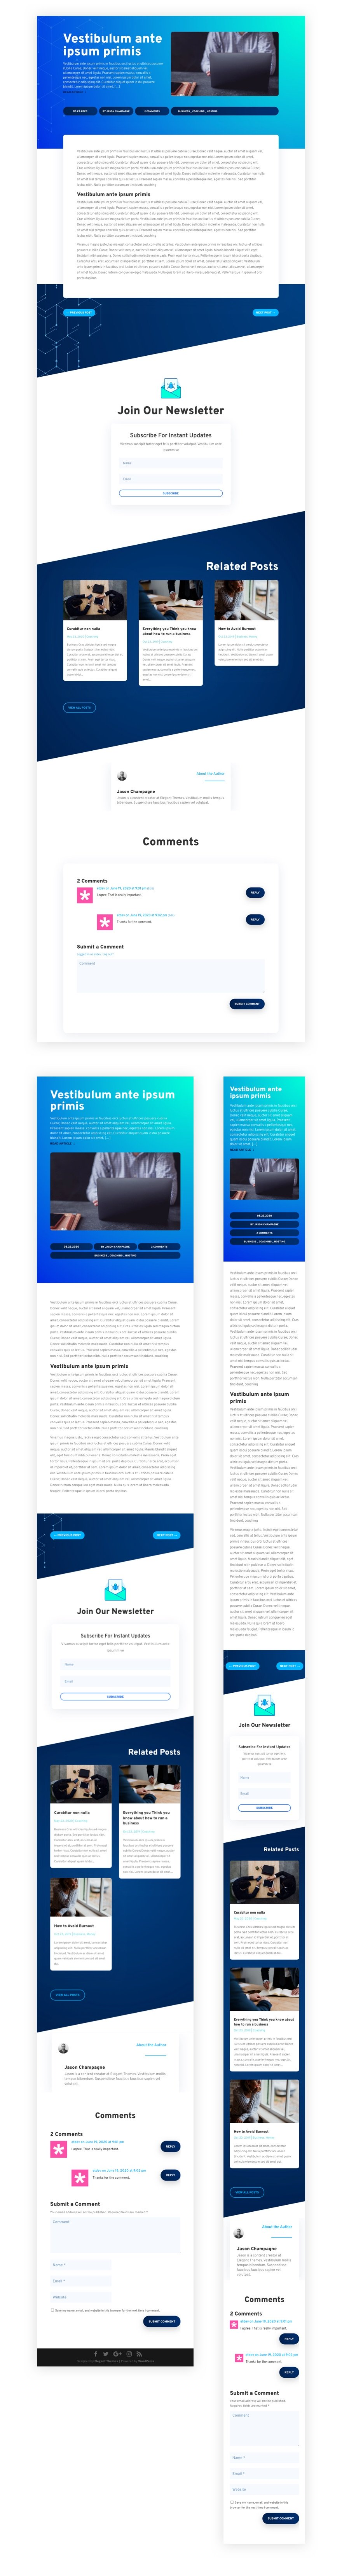 get-a-free-blog-post-template-for-divis-cyber-security-layout-pack Get a FREE Blog Post Template for Divi's Cyber Security Layout Pack